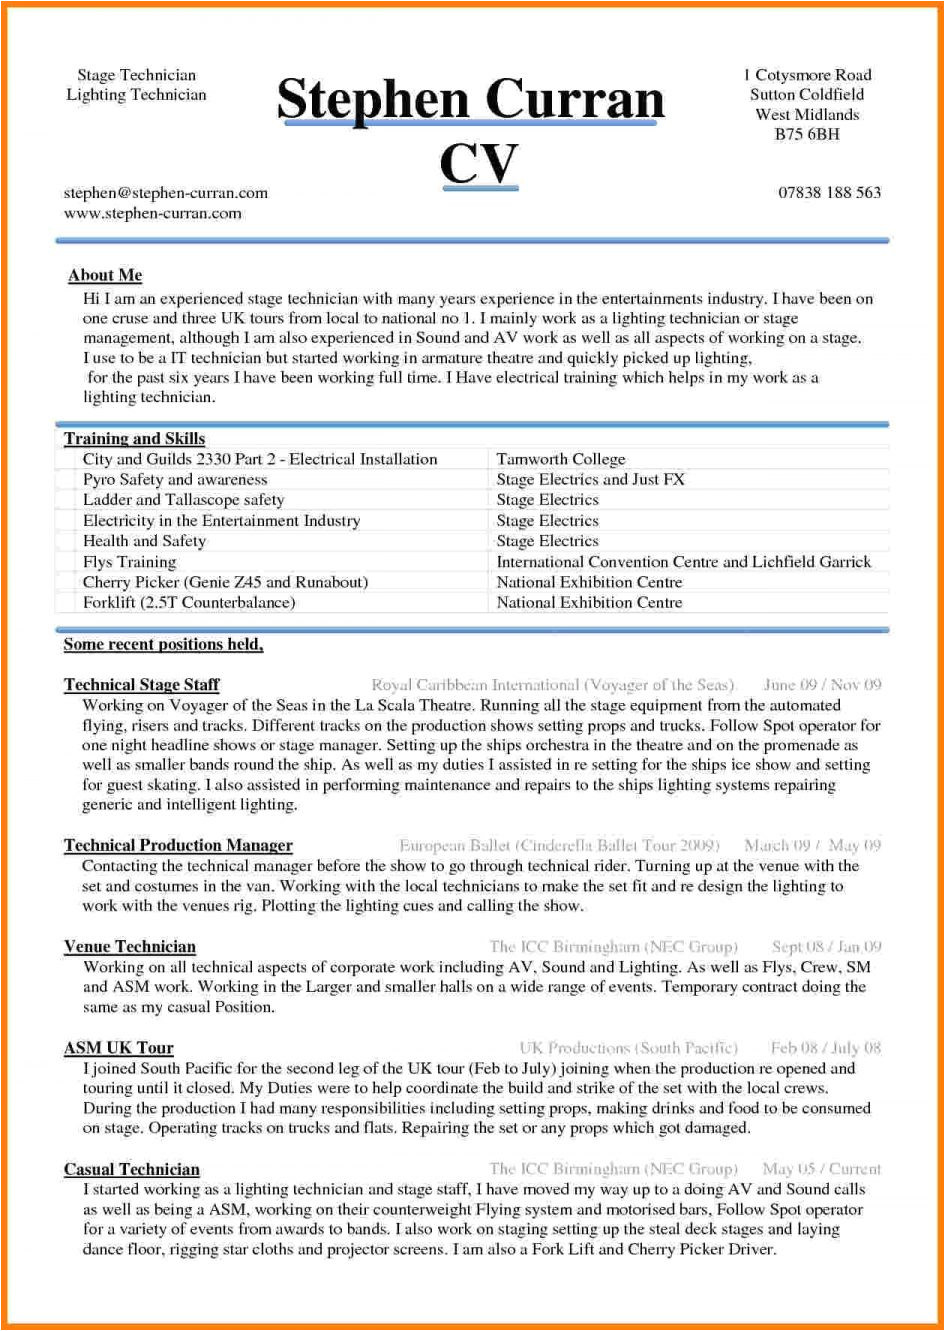 Resume format In Word for Civil Engineer Experienced Template Cv Template Word Doc Resume Samples Word Doc